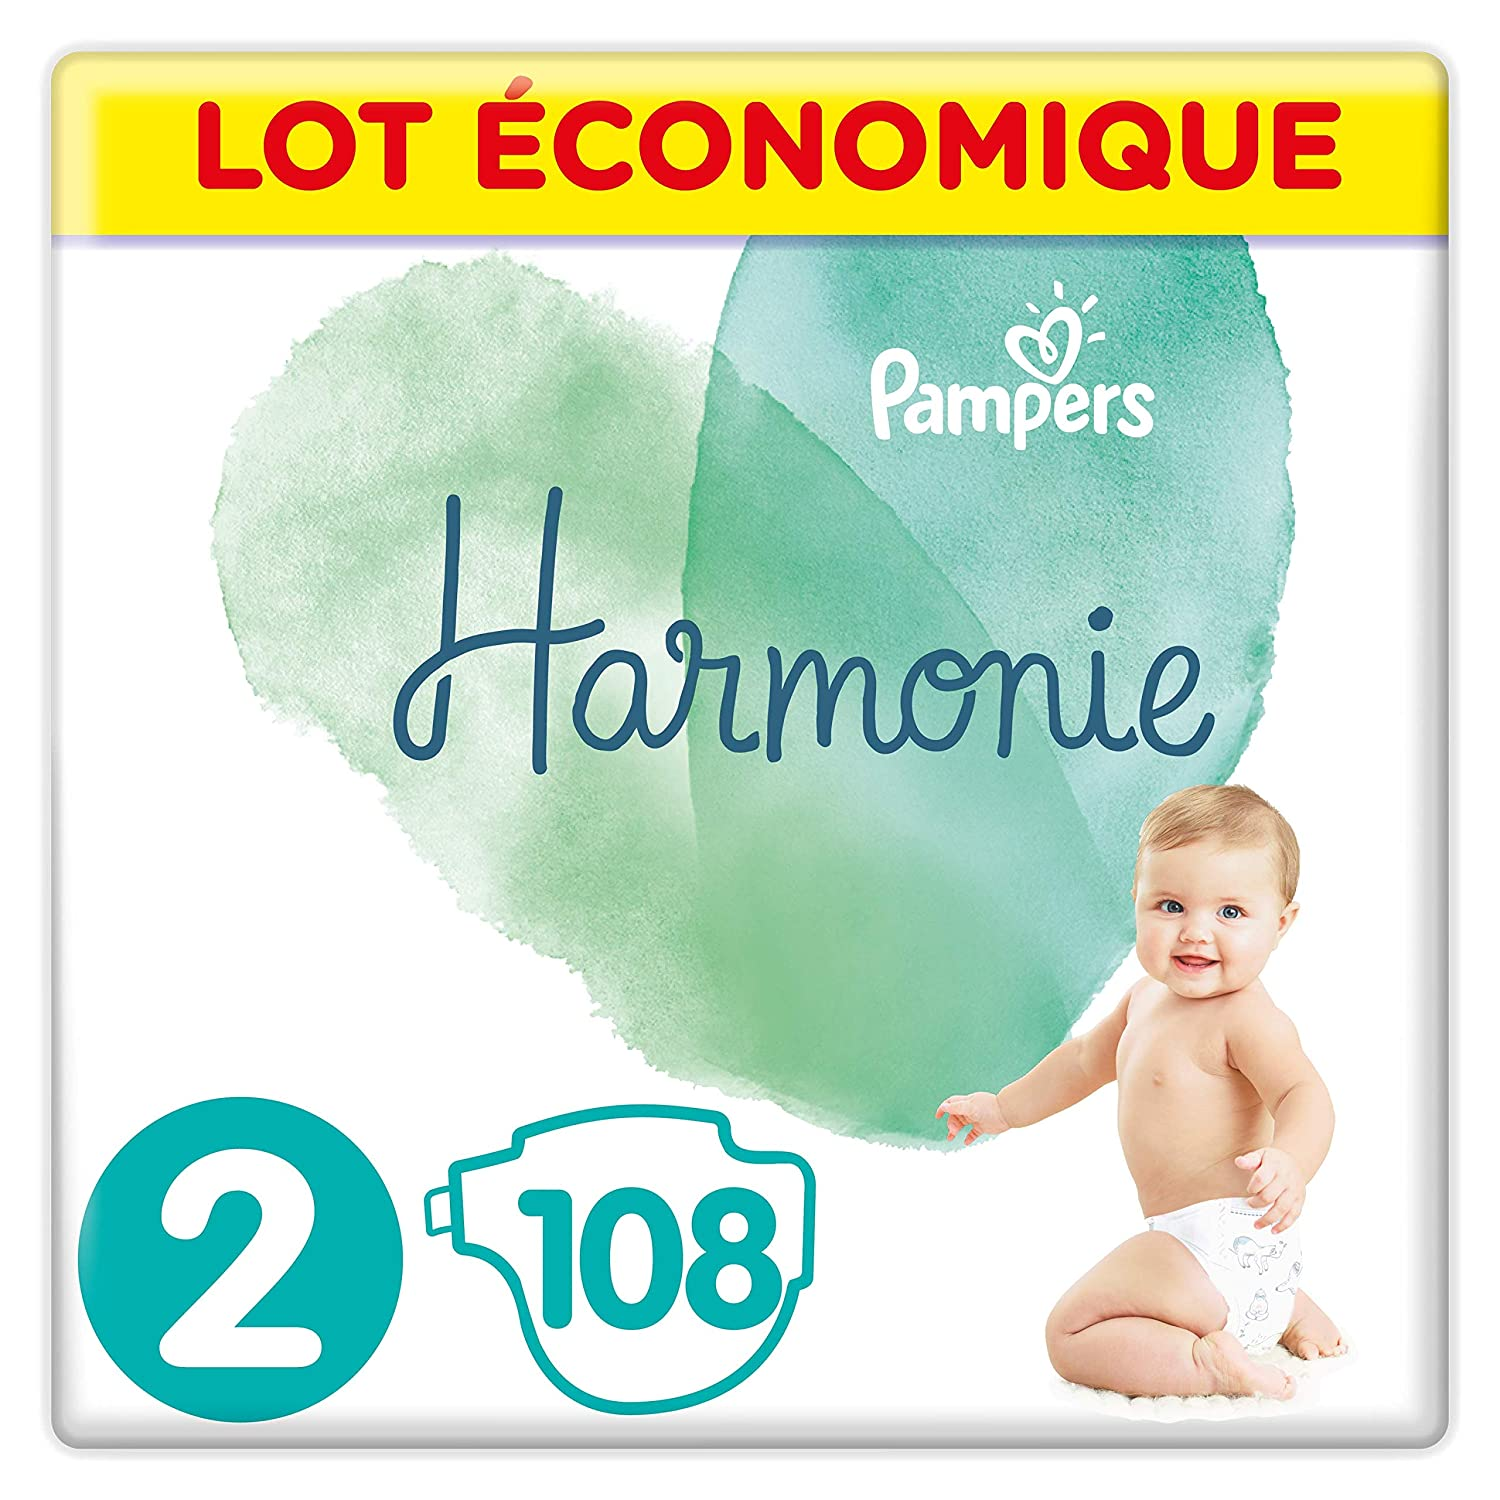 Pampers - Harmonie - Couches Taille 5 (11-16kg) - Lot é conomique de 102 couches (6x17 couches) 81673944